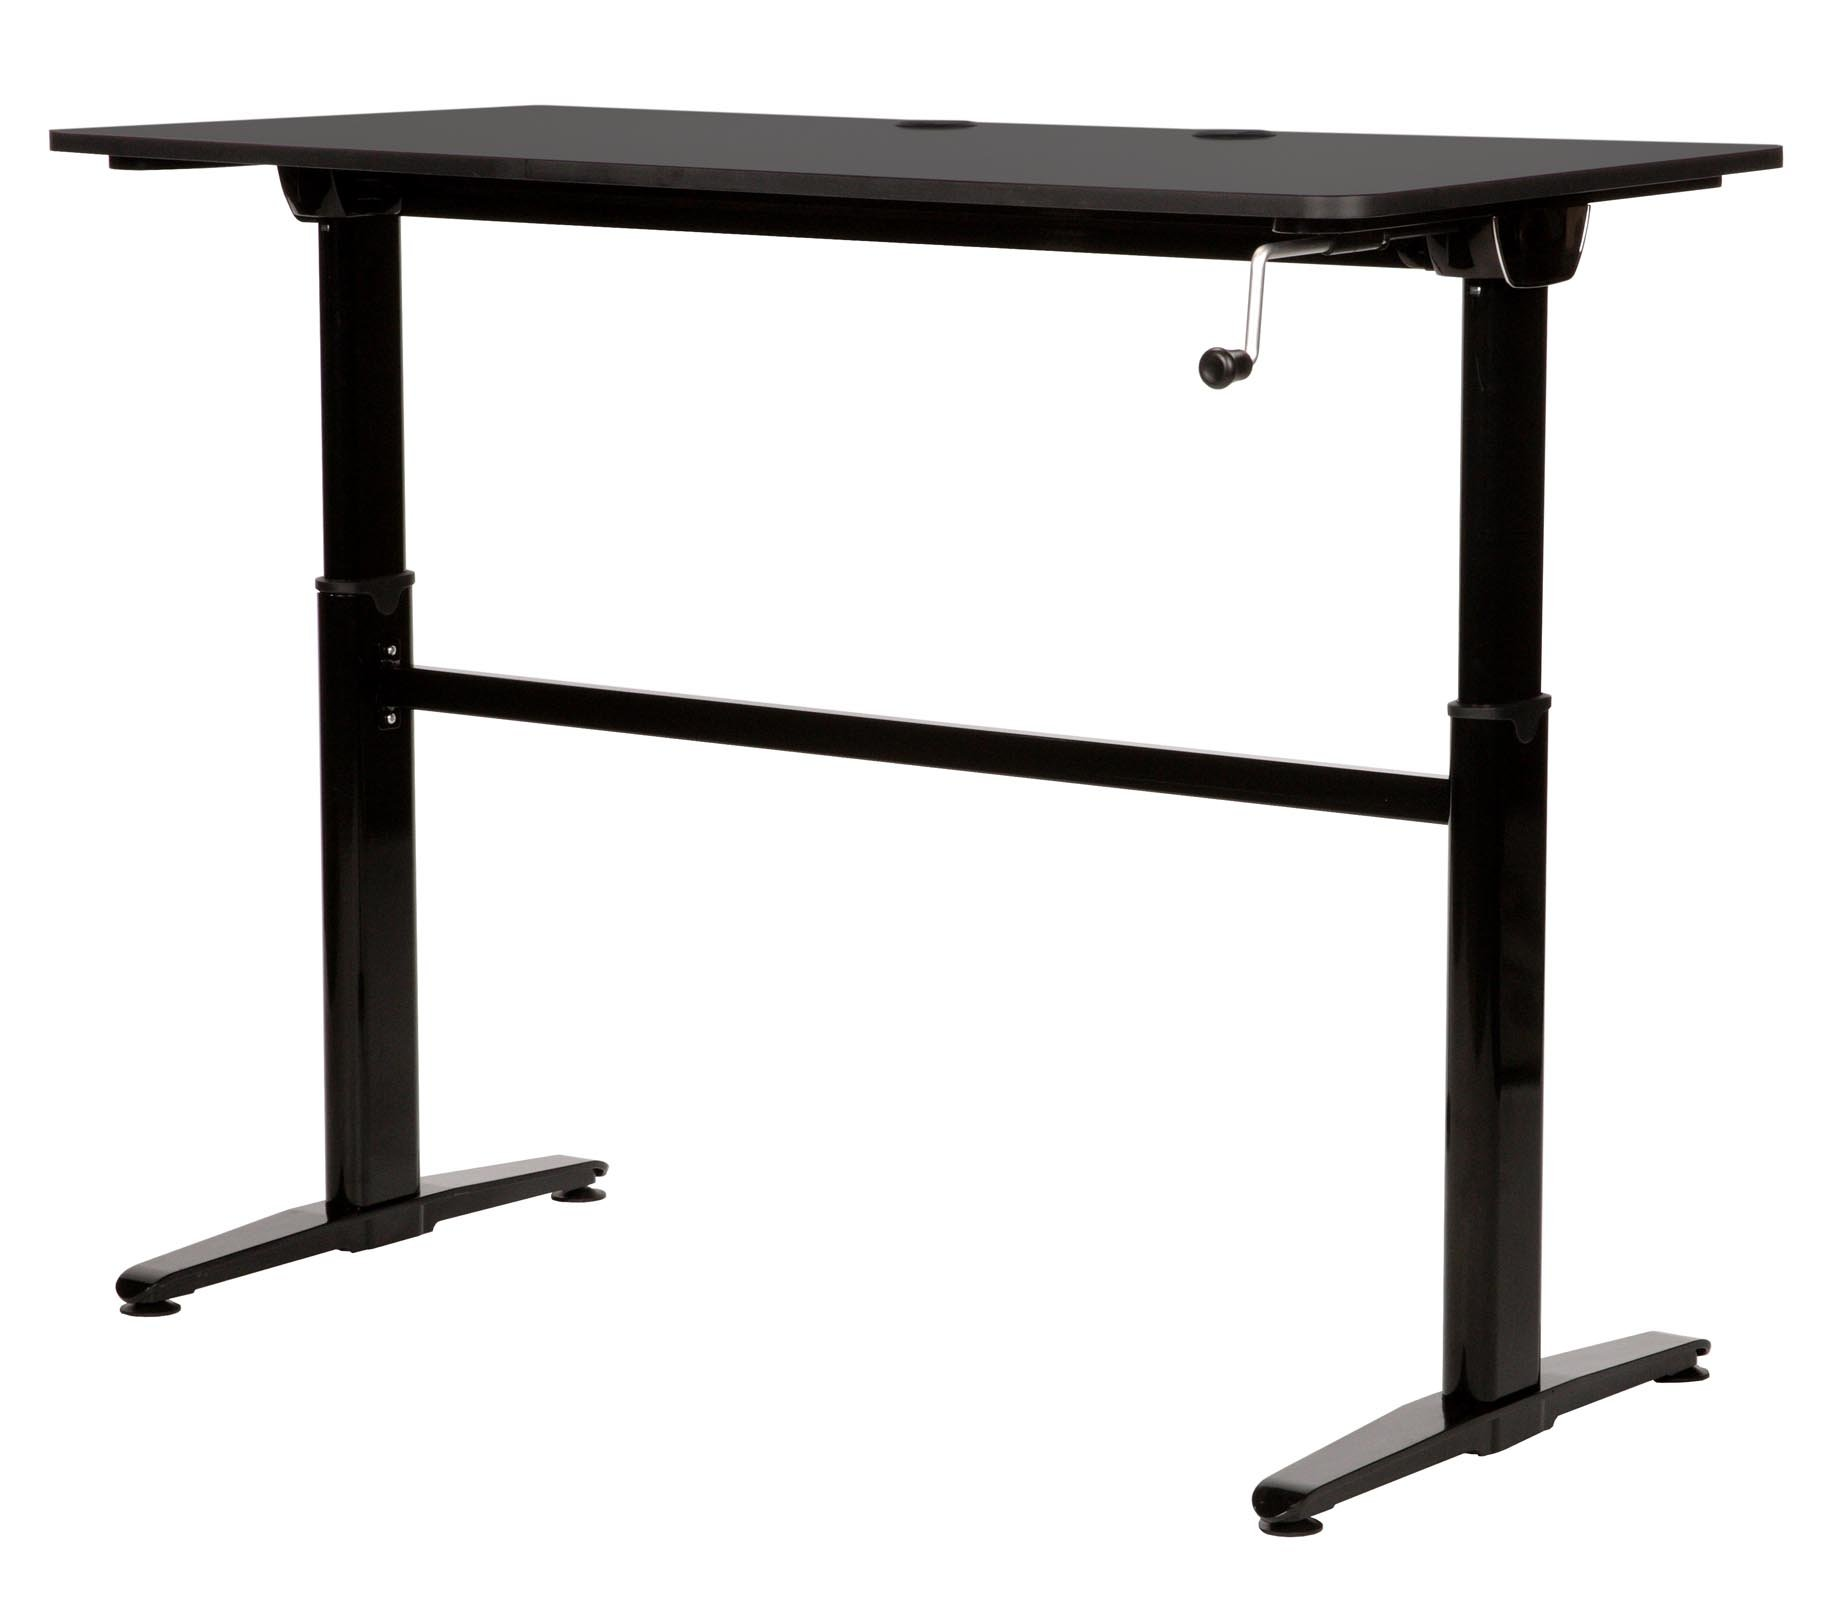 Cool-Living Stand Up Desk made of Light Weight Aluminum